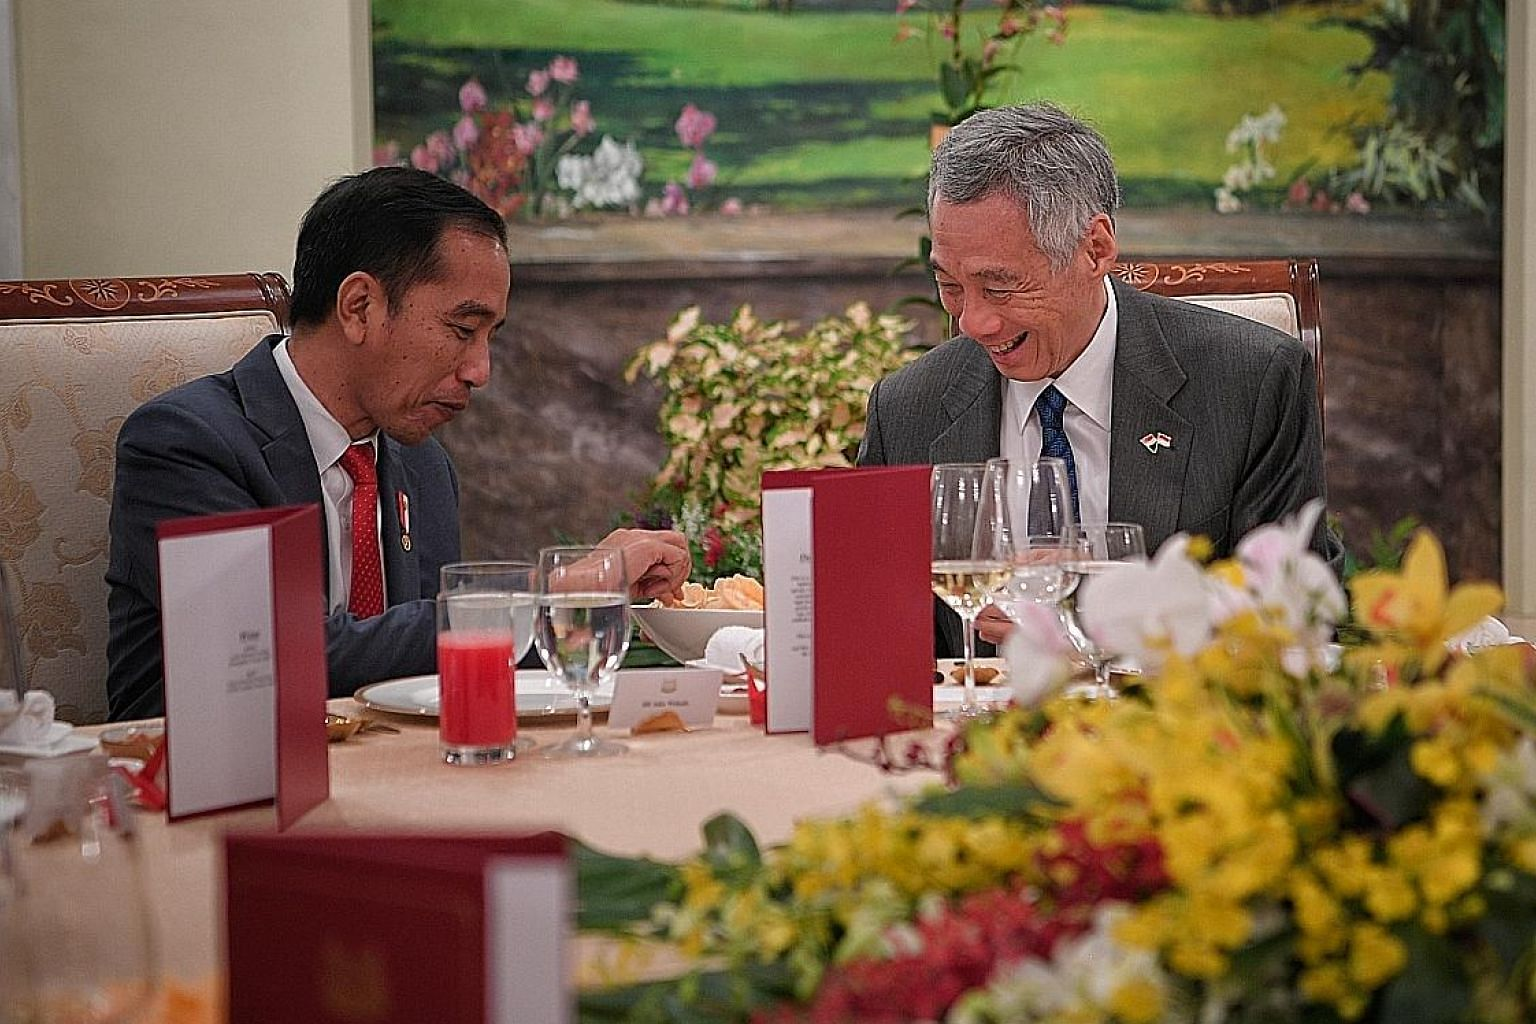 Indonesian President Joko Widodo and Prime Minister Lee Hsien Loong sharing a light moment over keropok and sambal at the start of their dinner yesterday at the Istana, during this year's Singapore-Indonesia Leaders' Retreat. ST PHOTO: MARK CHEONG